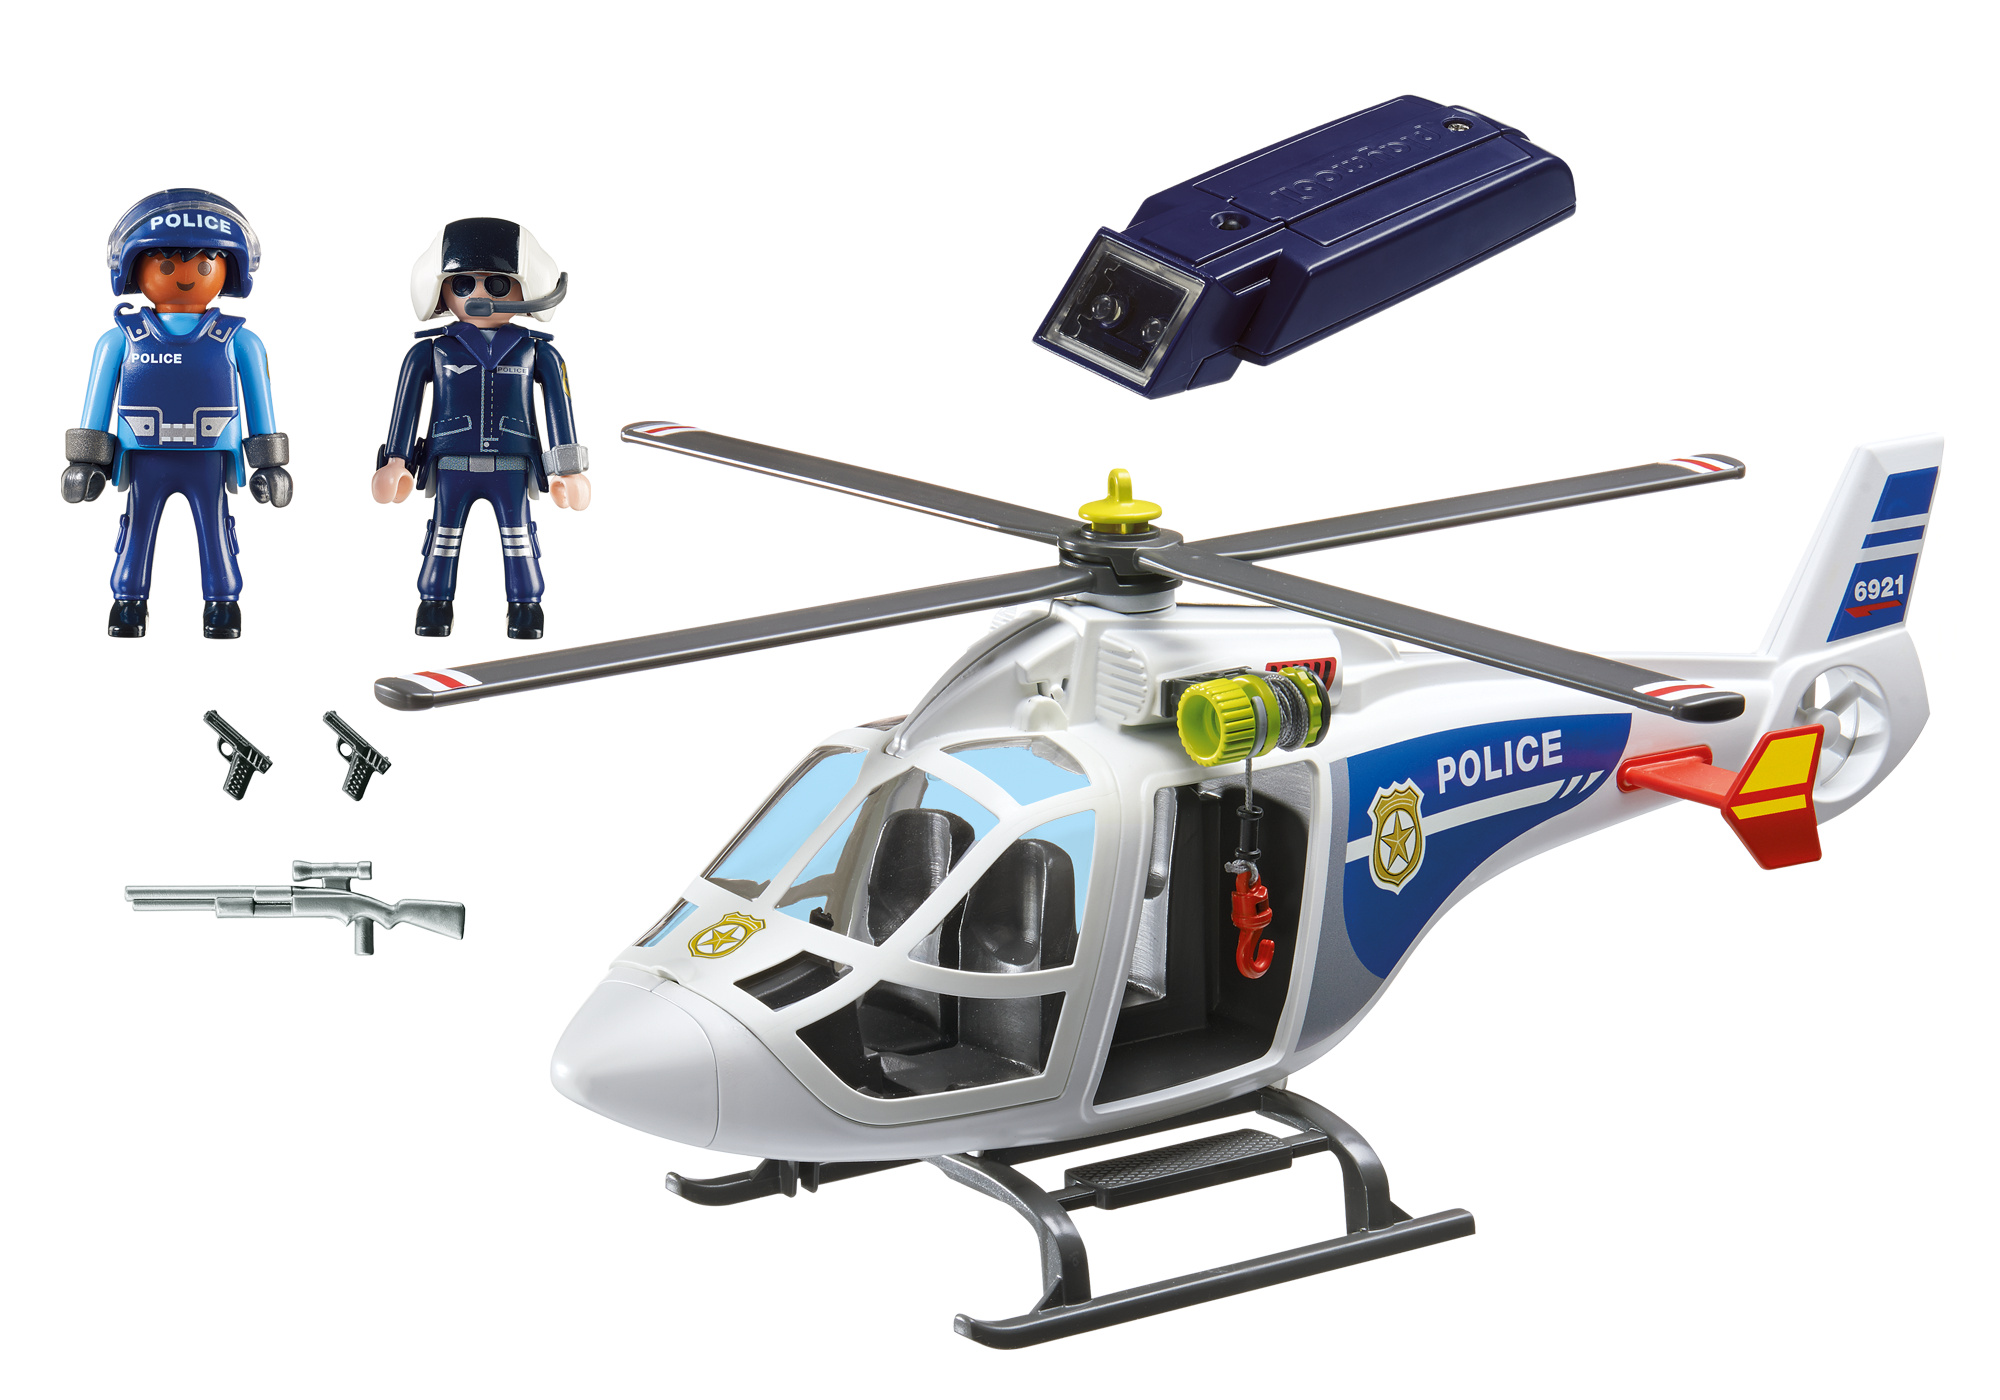 http://media.playmobil.com/i/playmobil/6921_product_box_back/Police Helicopter with LED Searchlight